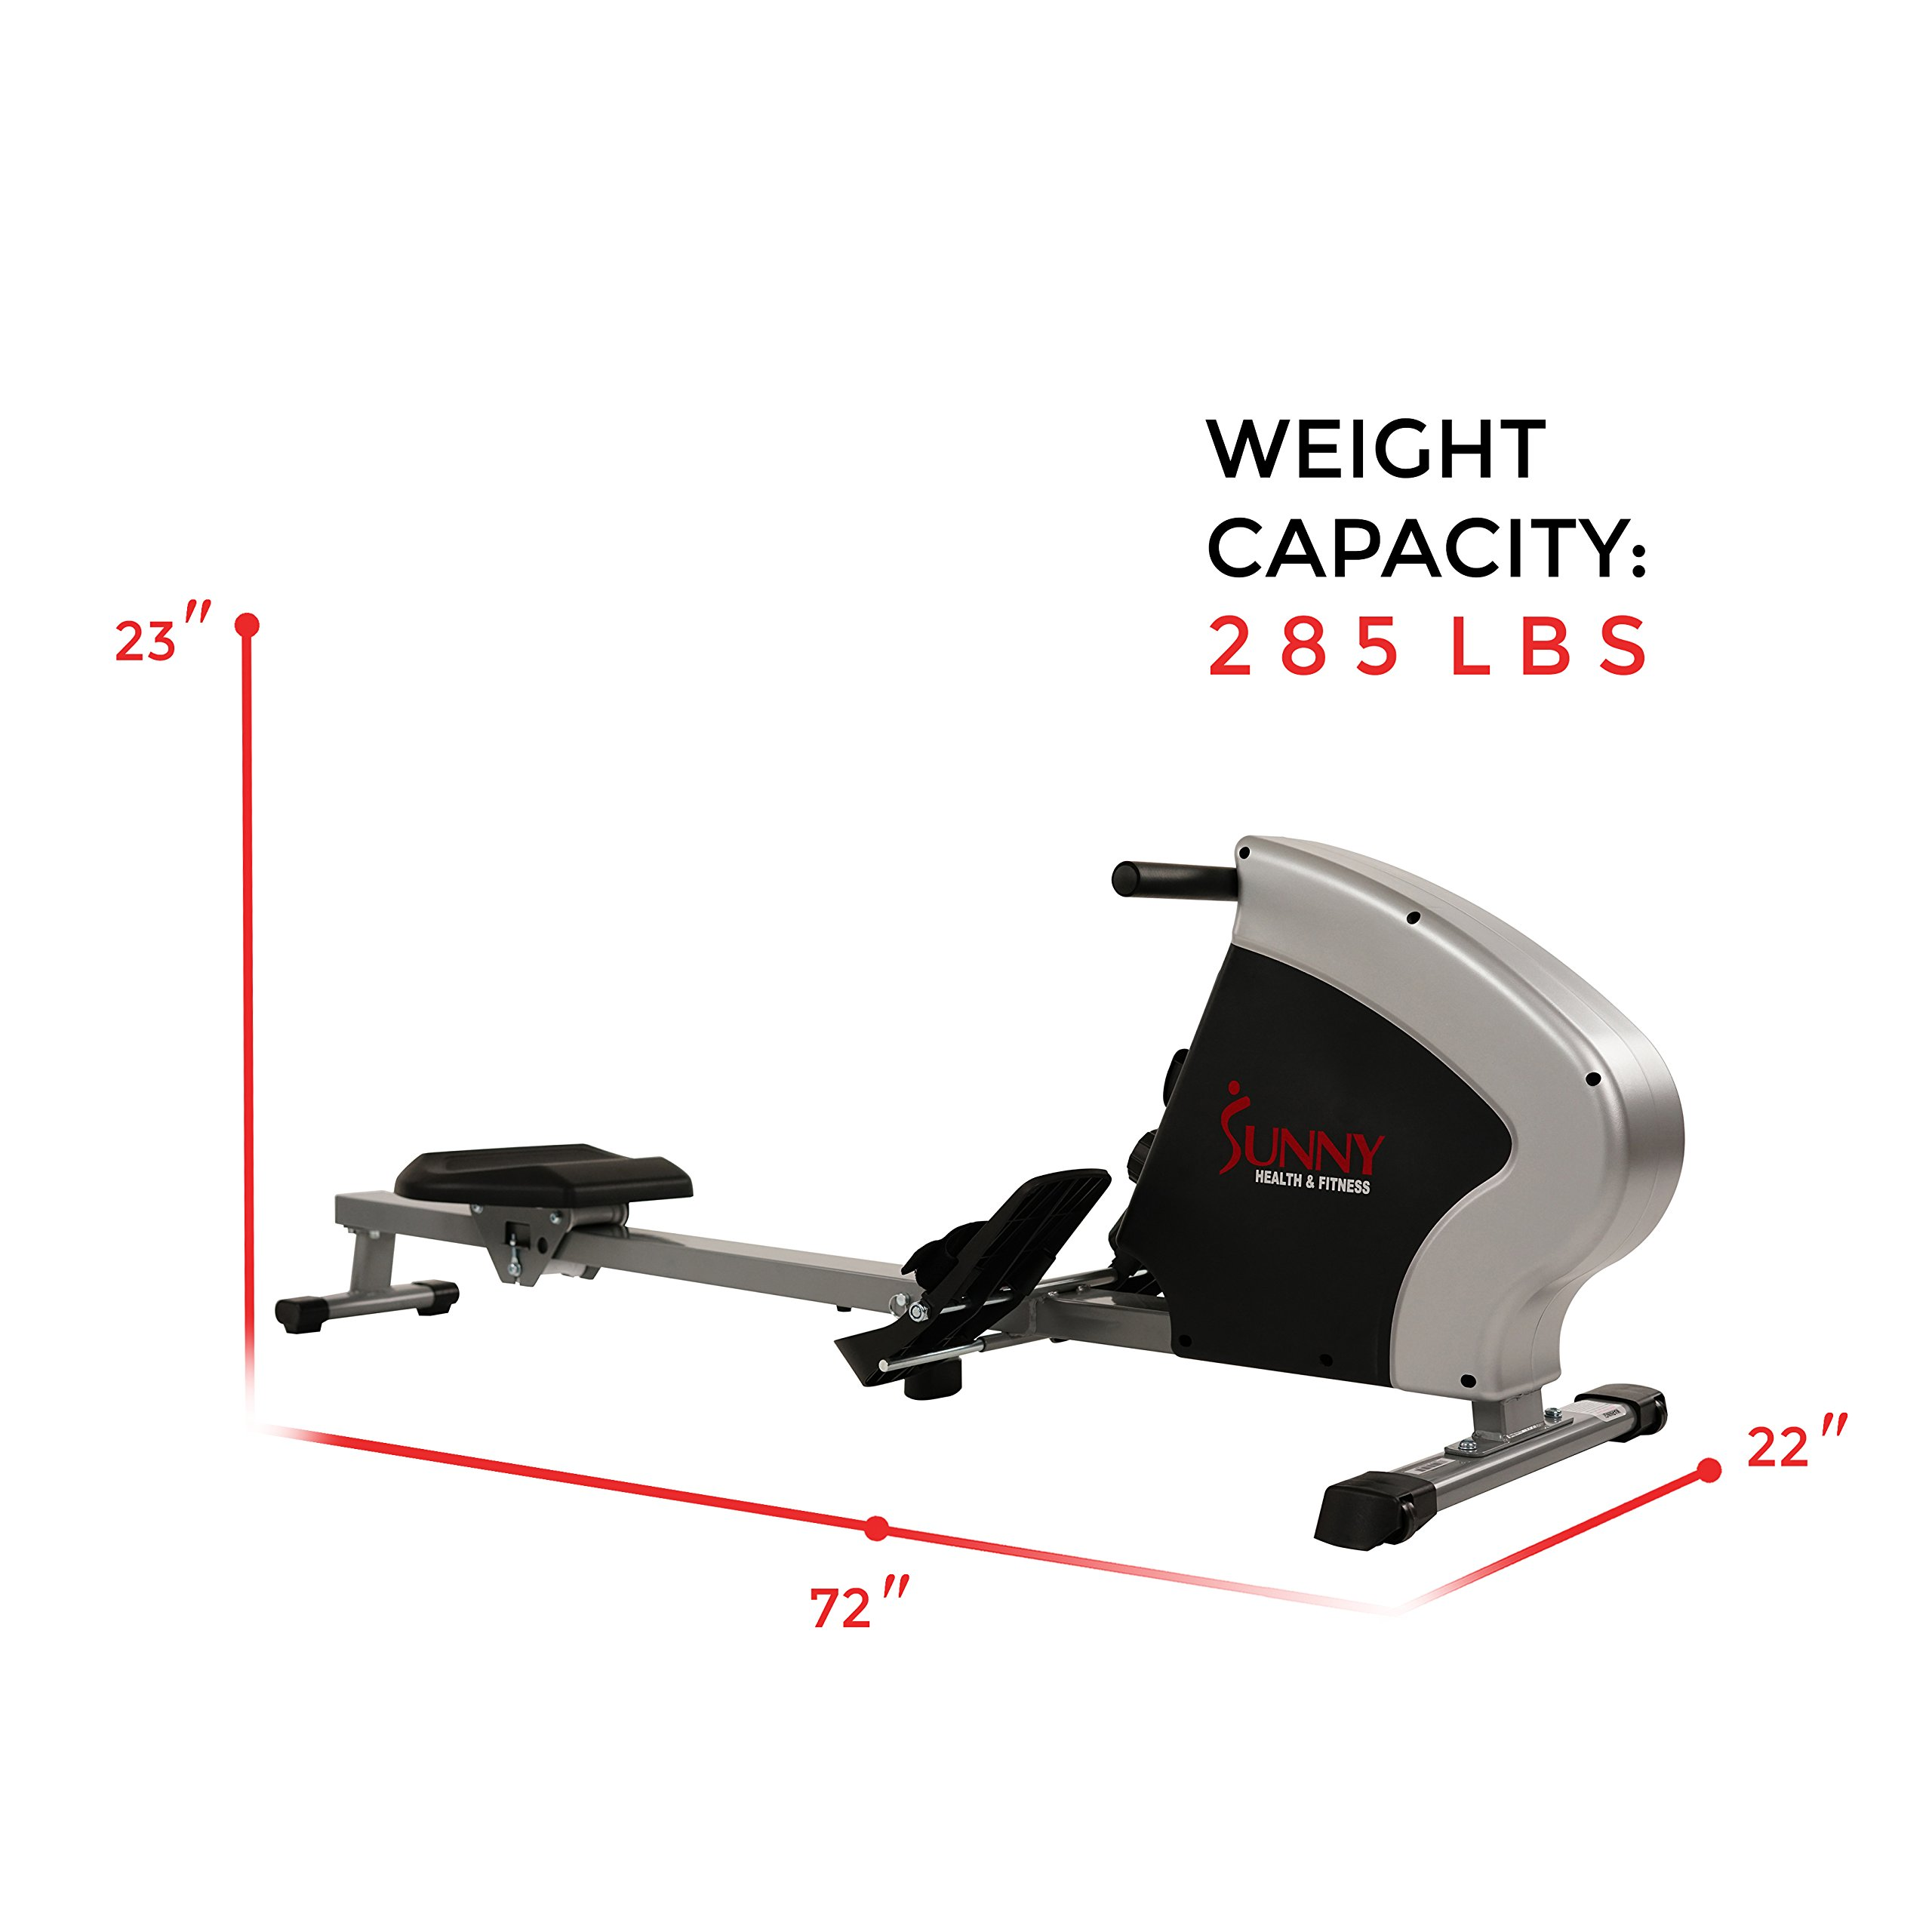 Sunny Health & Fitness Compact Folding Magnetic Rowing Machine Rower, LCD Monitor with Tablet Holder - Synergy Power Motion - SF-RW5801 by Sunny Health & Fitness (Image #17)